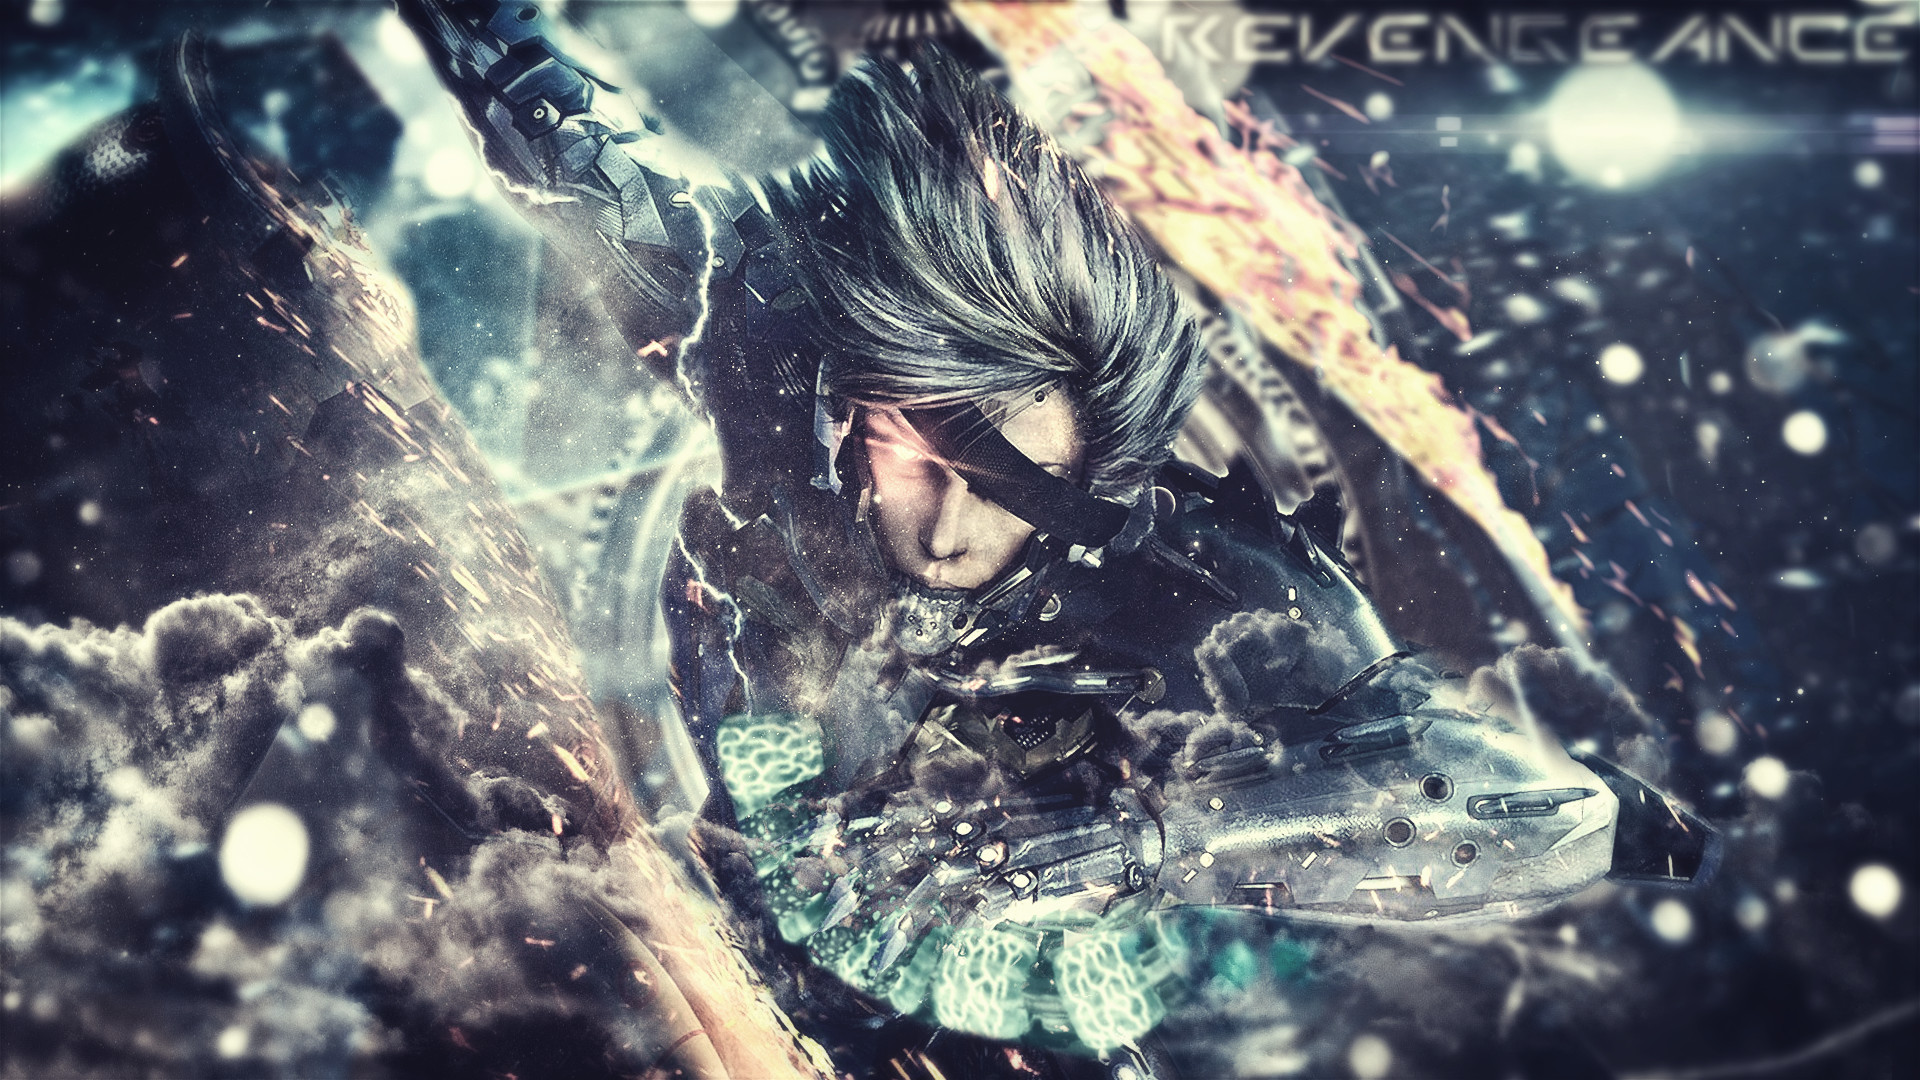 Metal Gear Rising: Revengeance Wallpapers, Pictures, Images